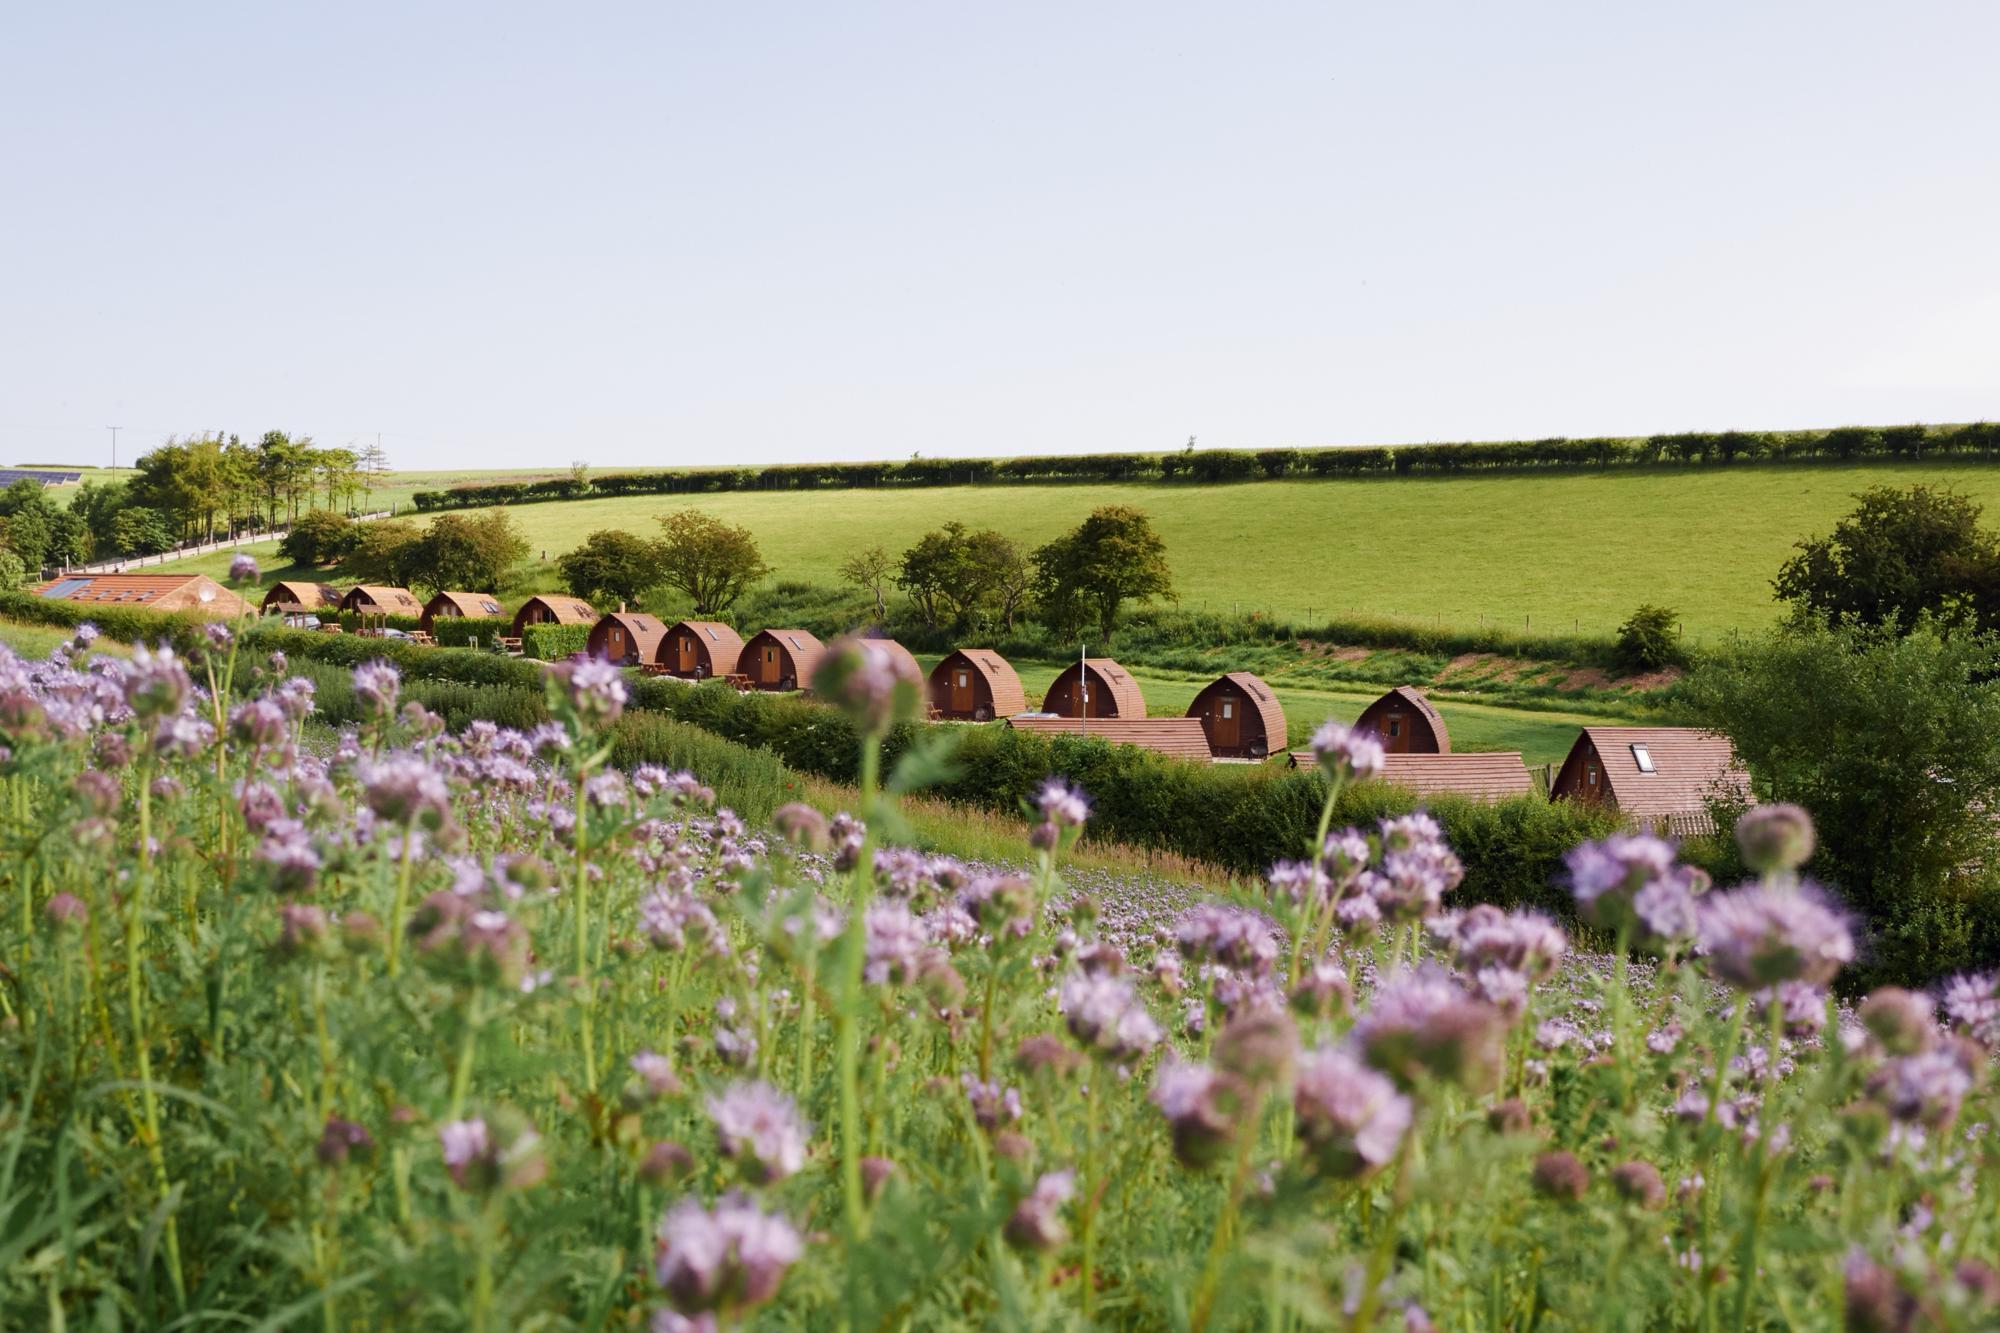 'We're Good To Go' accredited campsites – Visit Britain accredited